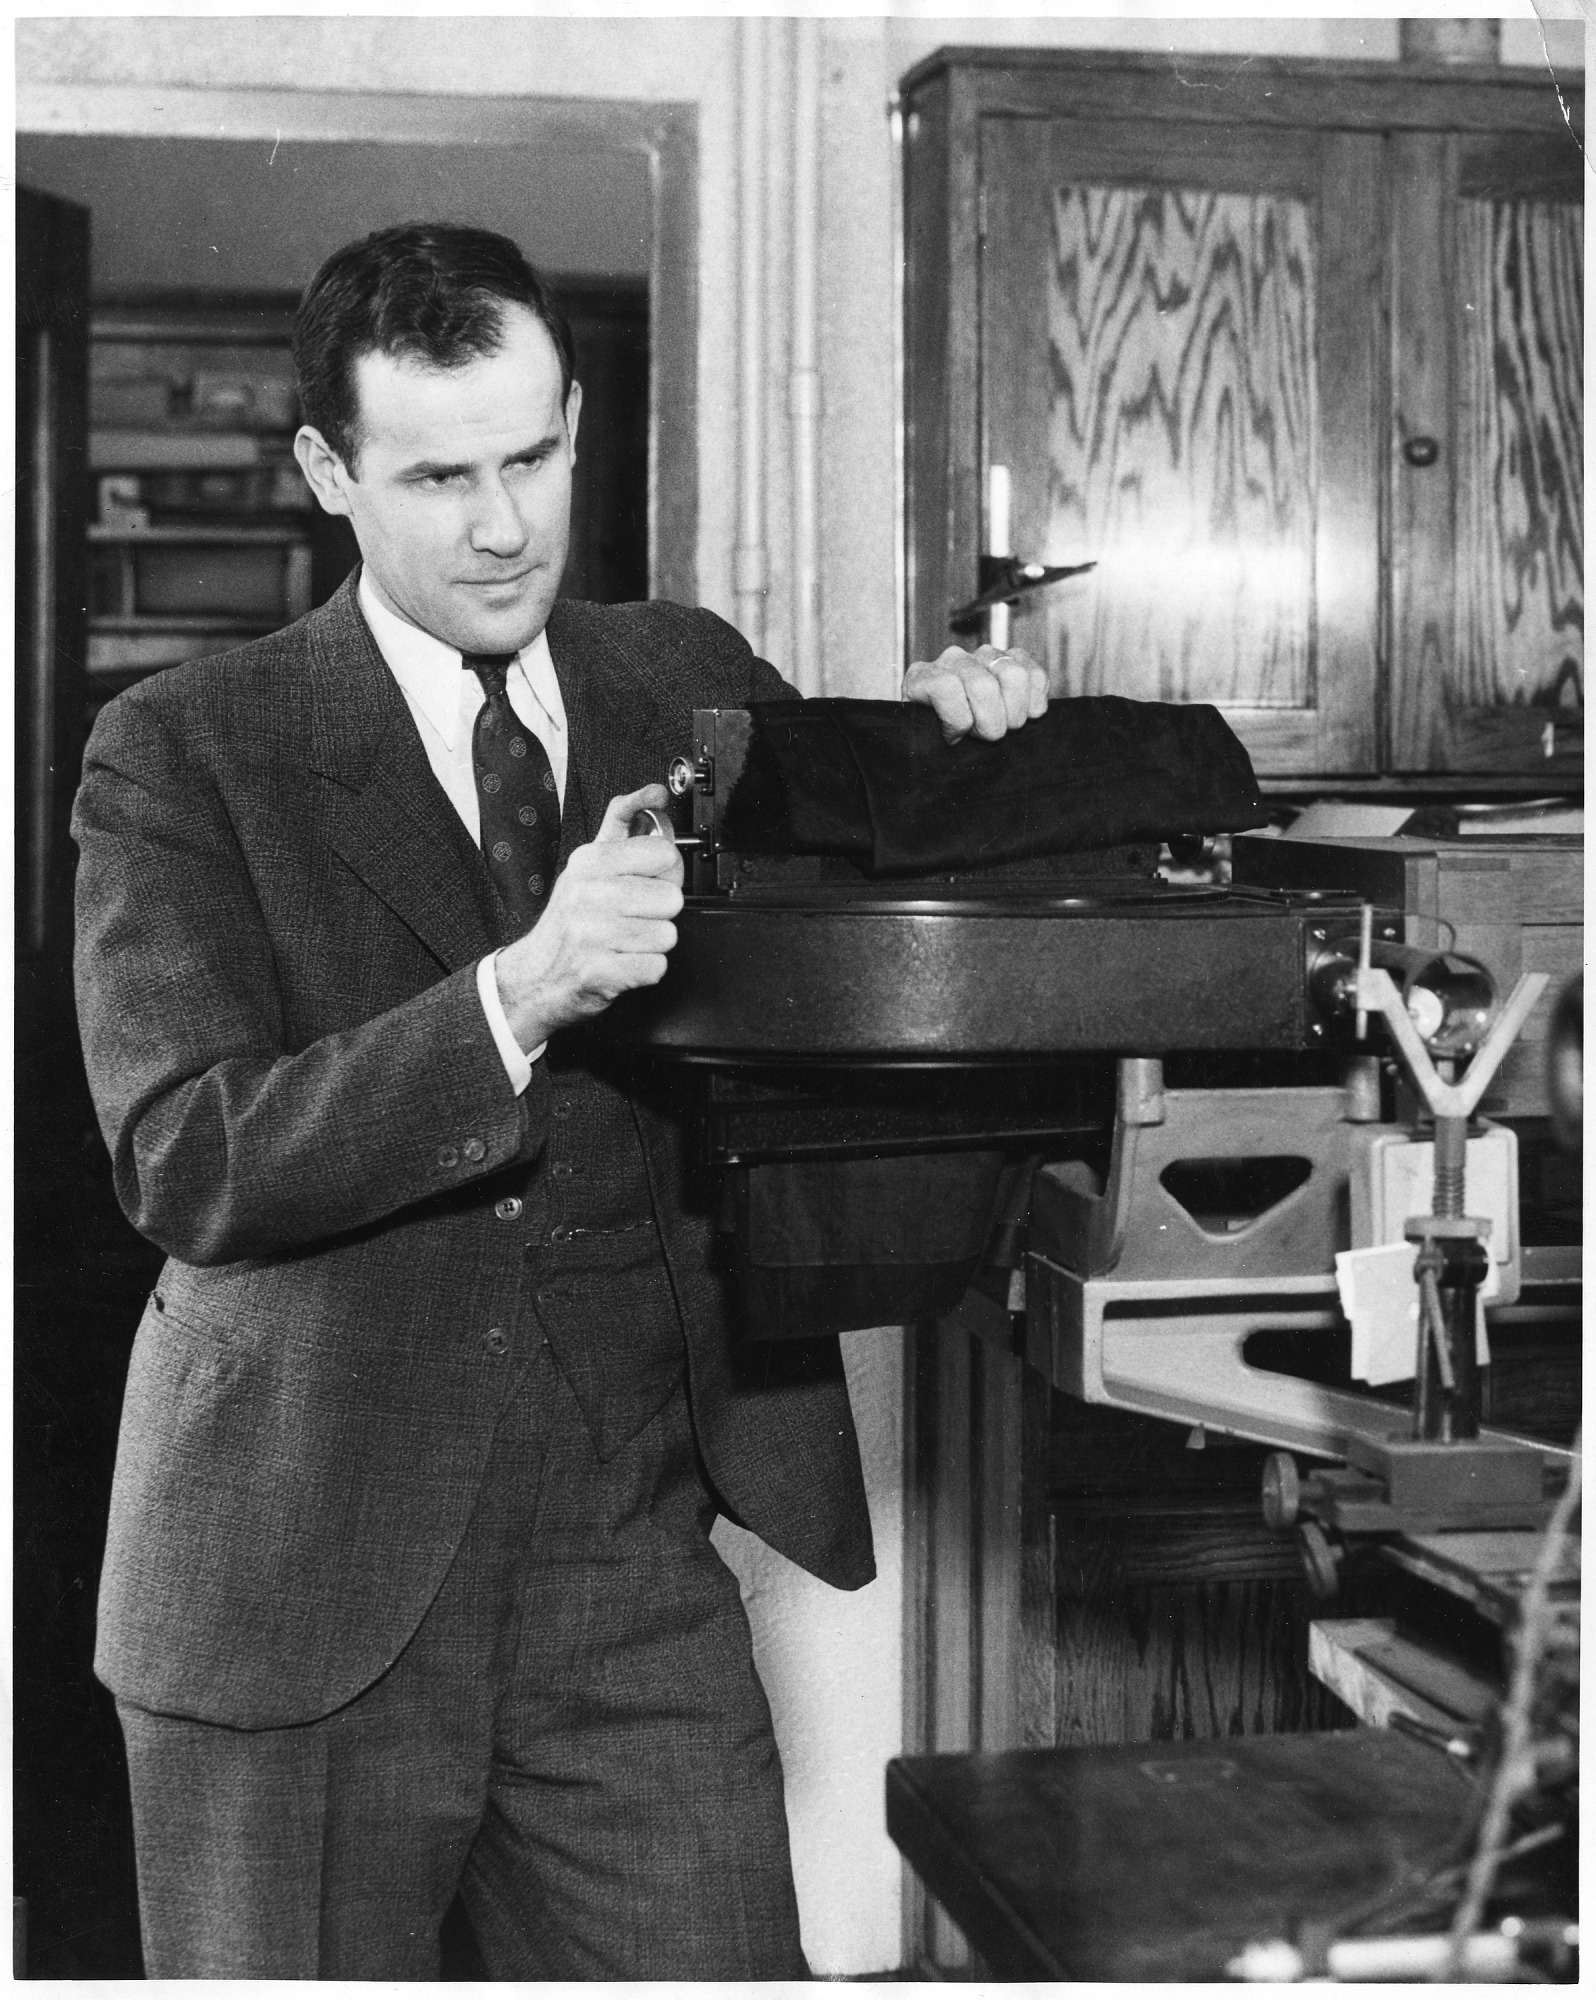 Wallace Reed Brode (1900-1974), Smithsonian Institution Archives, SIA Acc. 90-105 [SIA2008-0050].